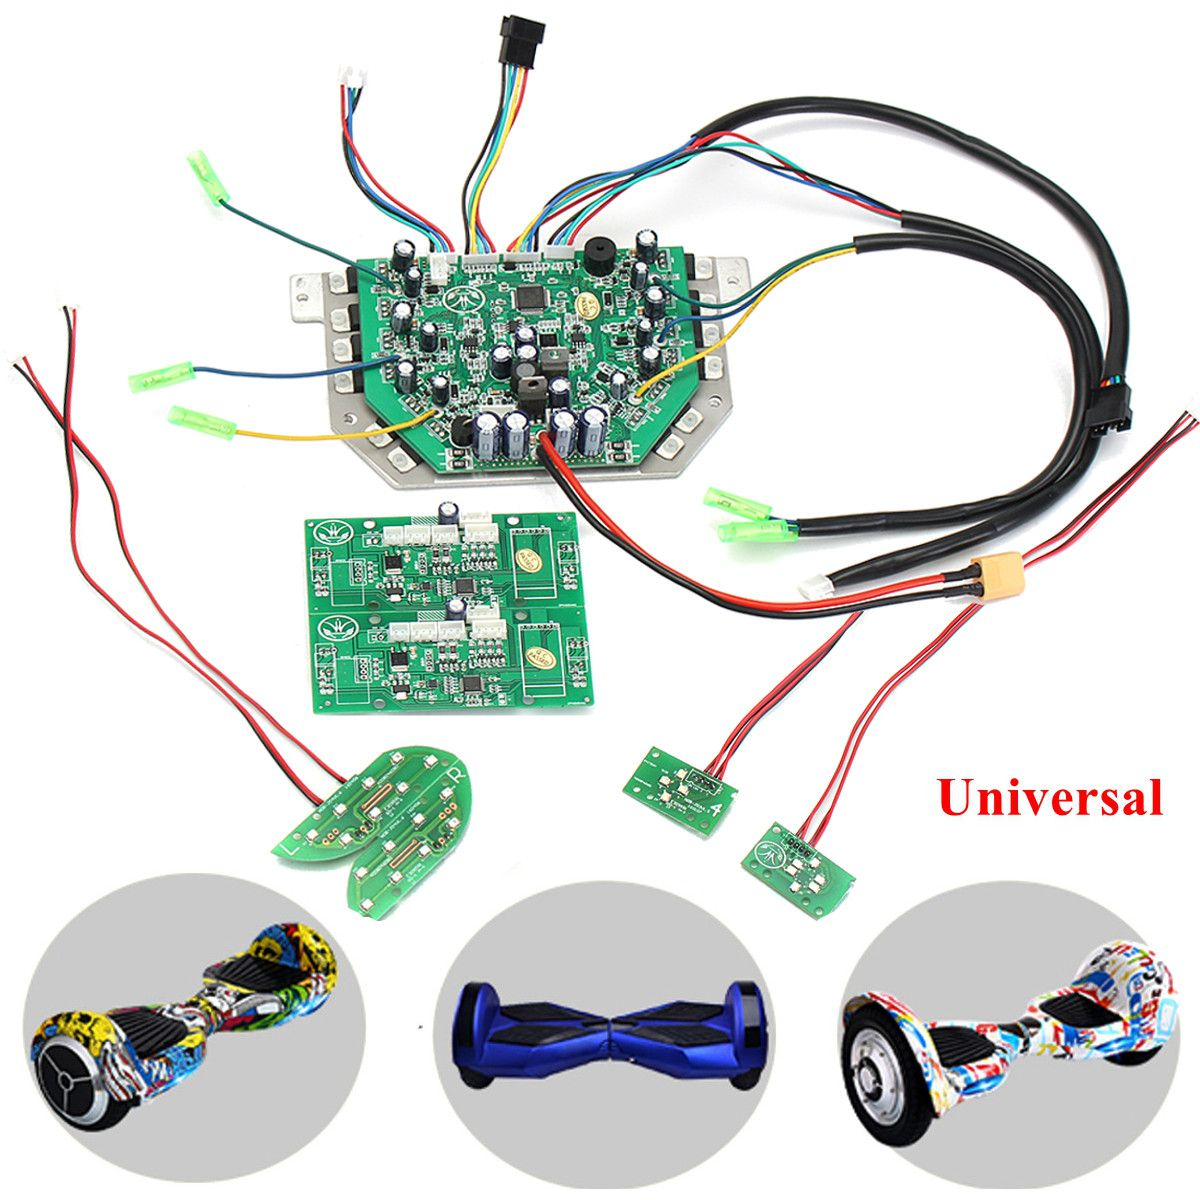 CircSelf Balancing Control Circuit Motherboard For HoverBoard Scooter Repair Parts